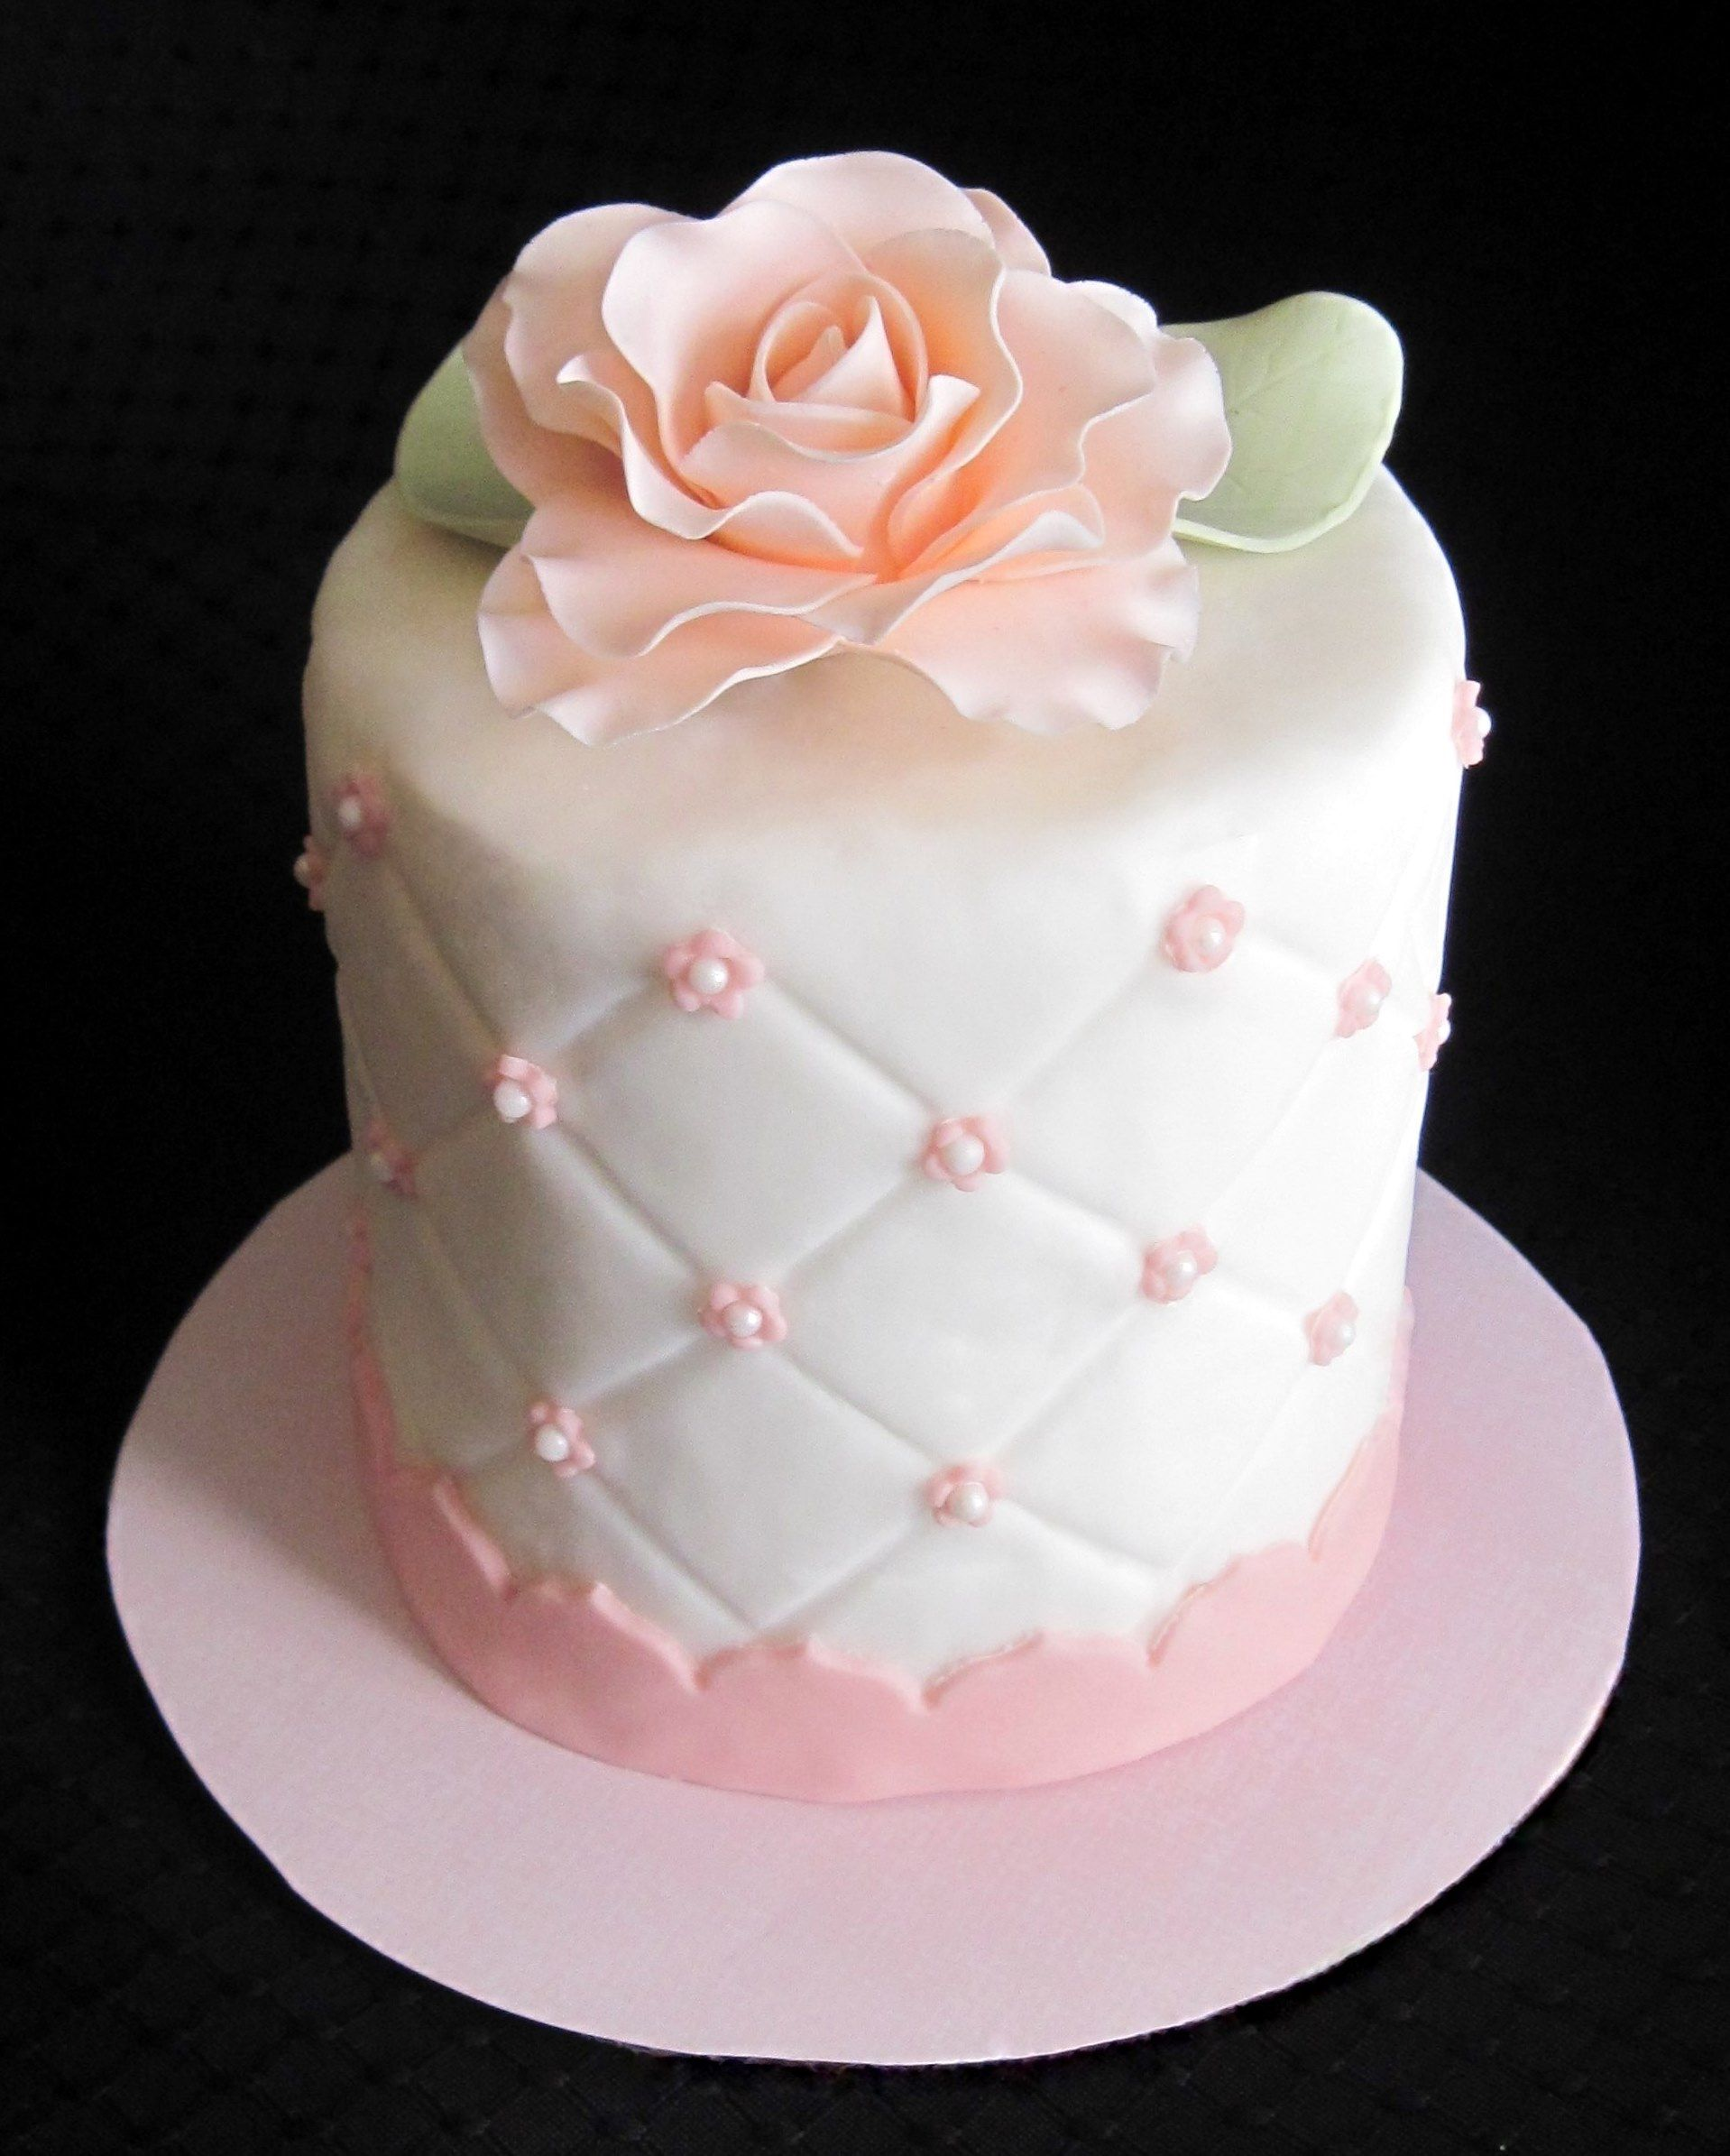 Sugar Paste Cake Decorating How To Make A Five Petal Fantasy Flower Flower Cakes And Fondant